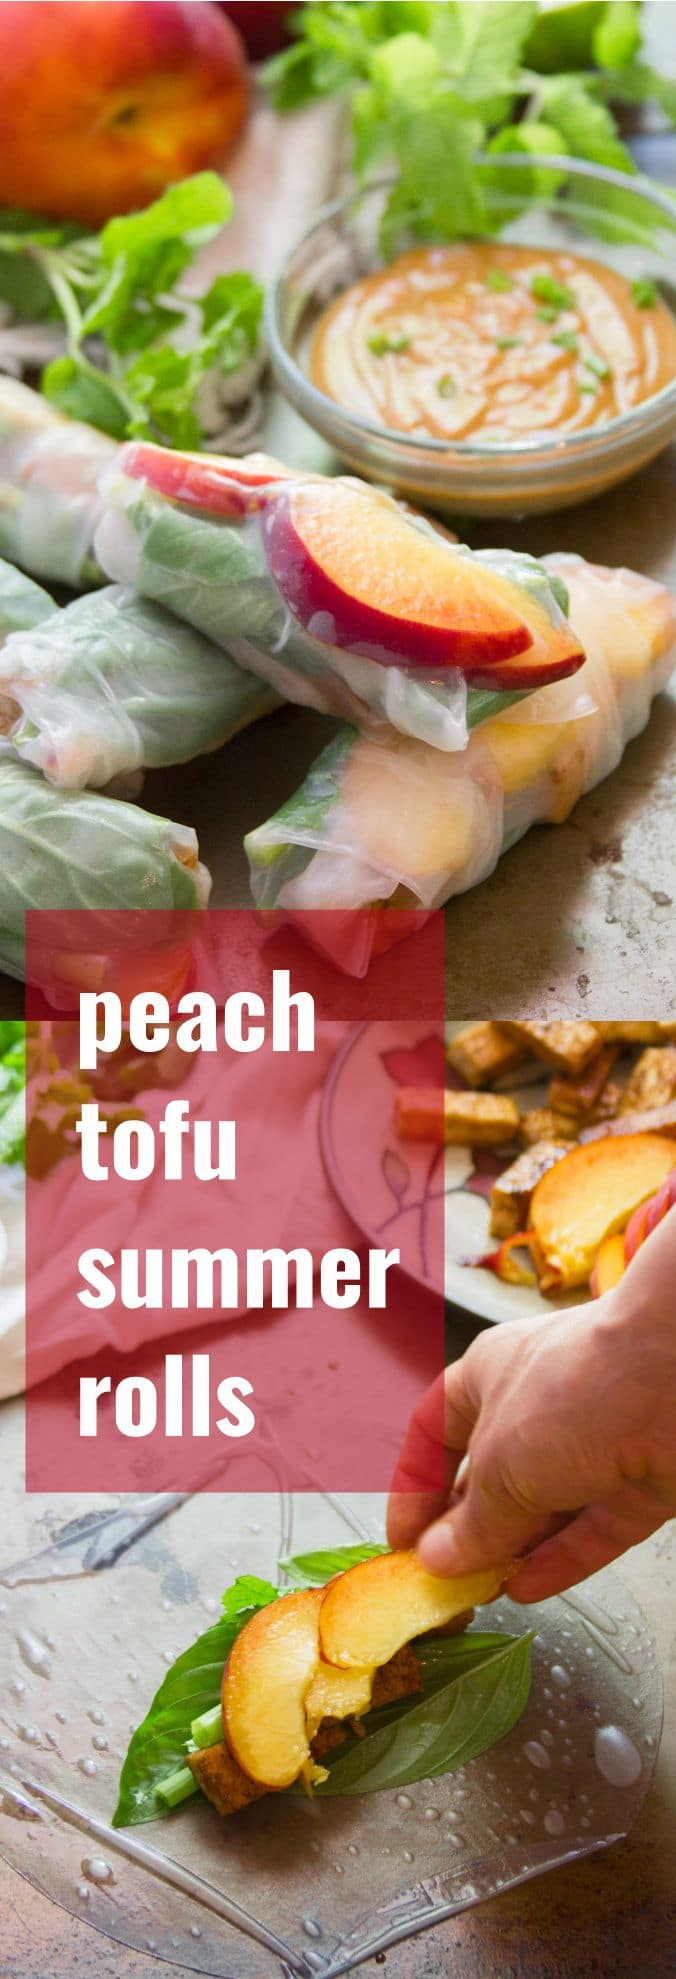 Tofu & Peach Summer Rolls with Peanut Dipping Sauce